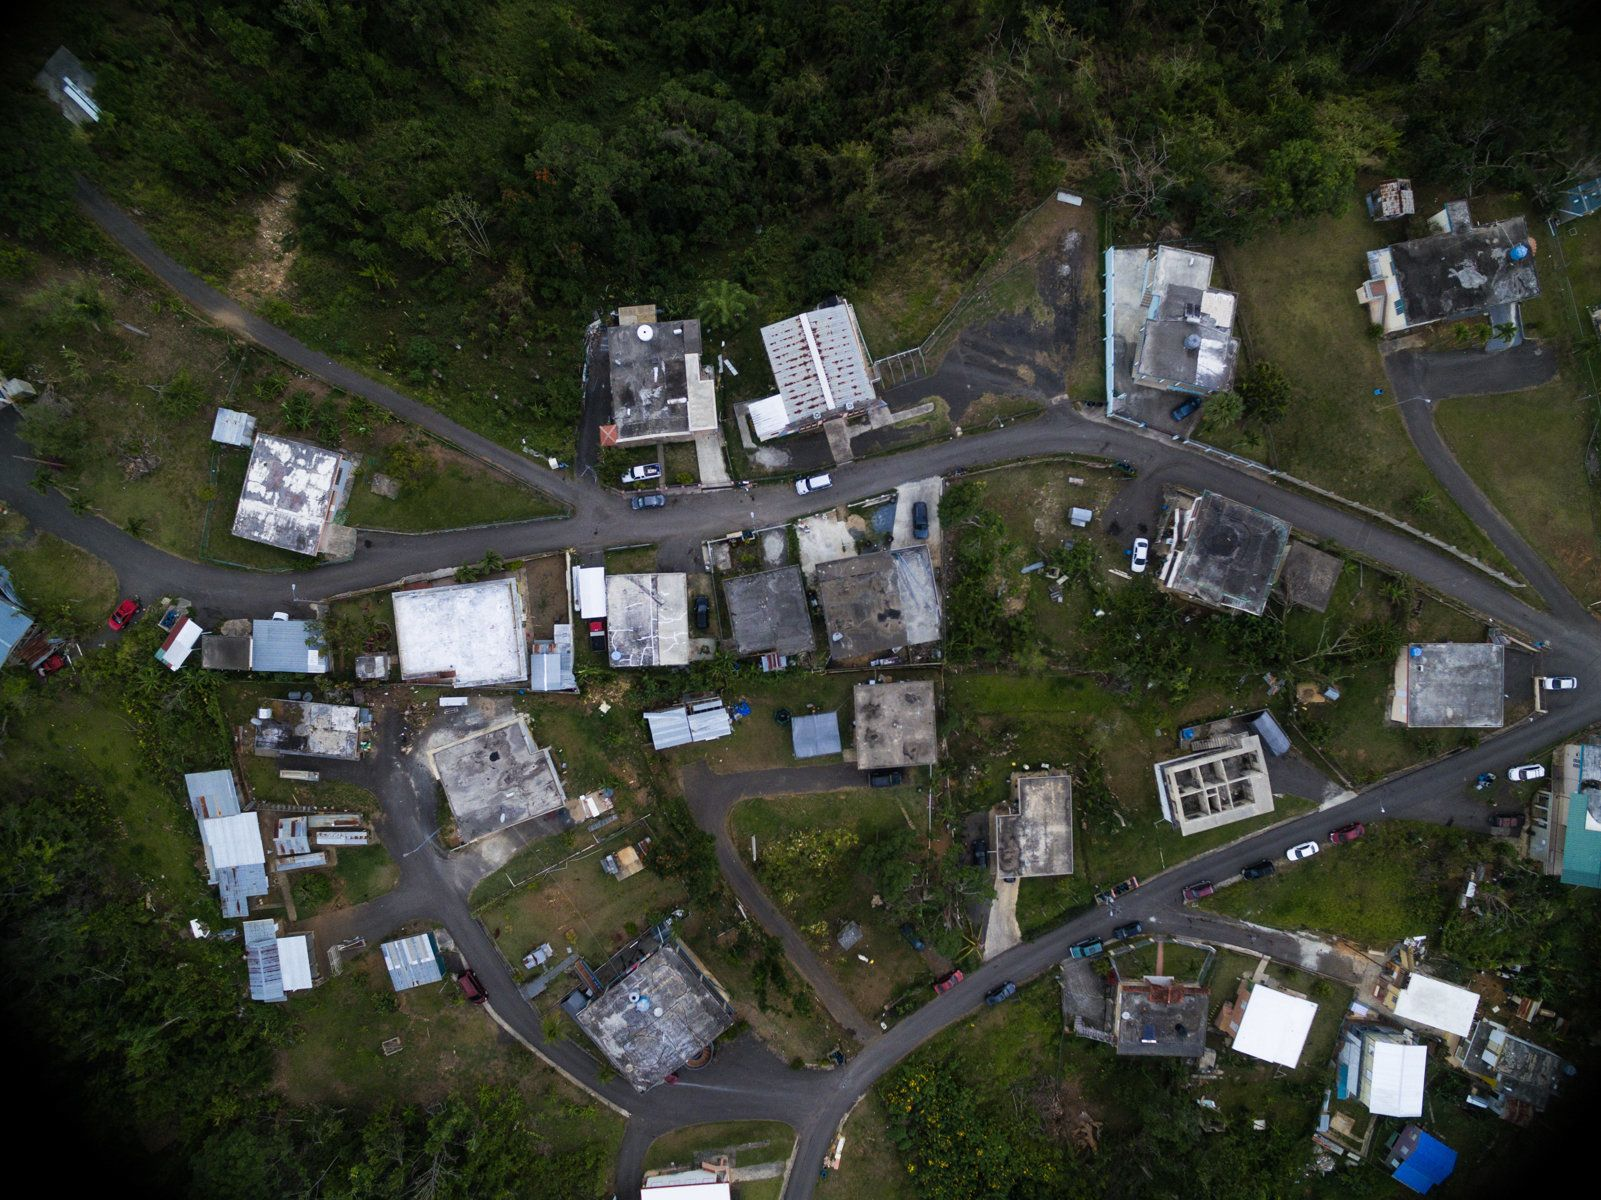 An overhead view of one of the communities Iniciativas De Paz serves reveals that some houses are entirely without roofs, and